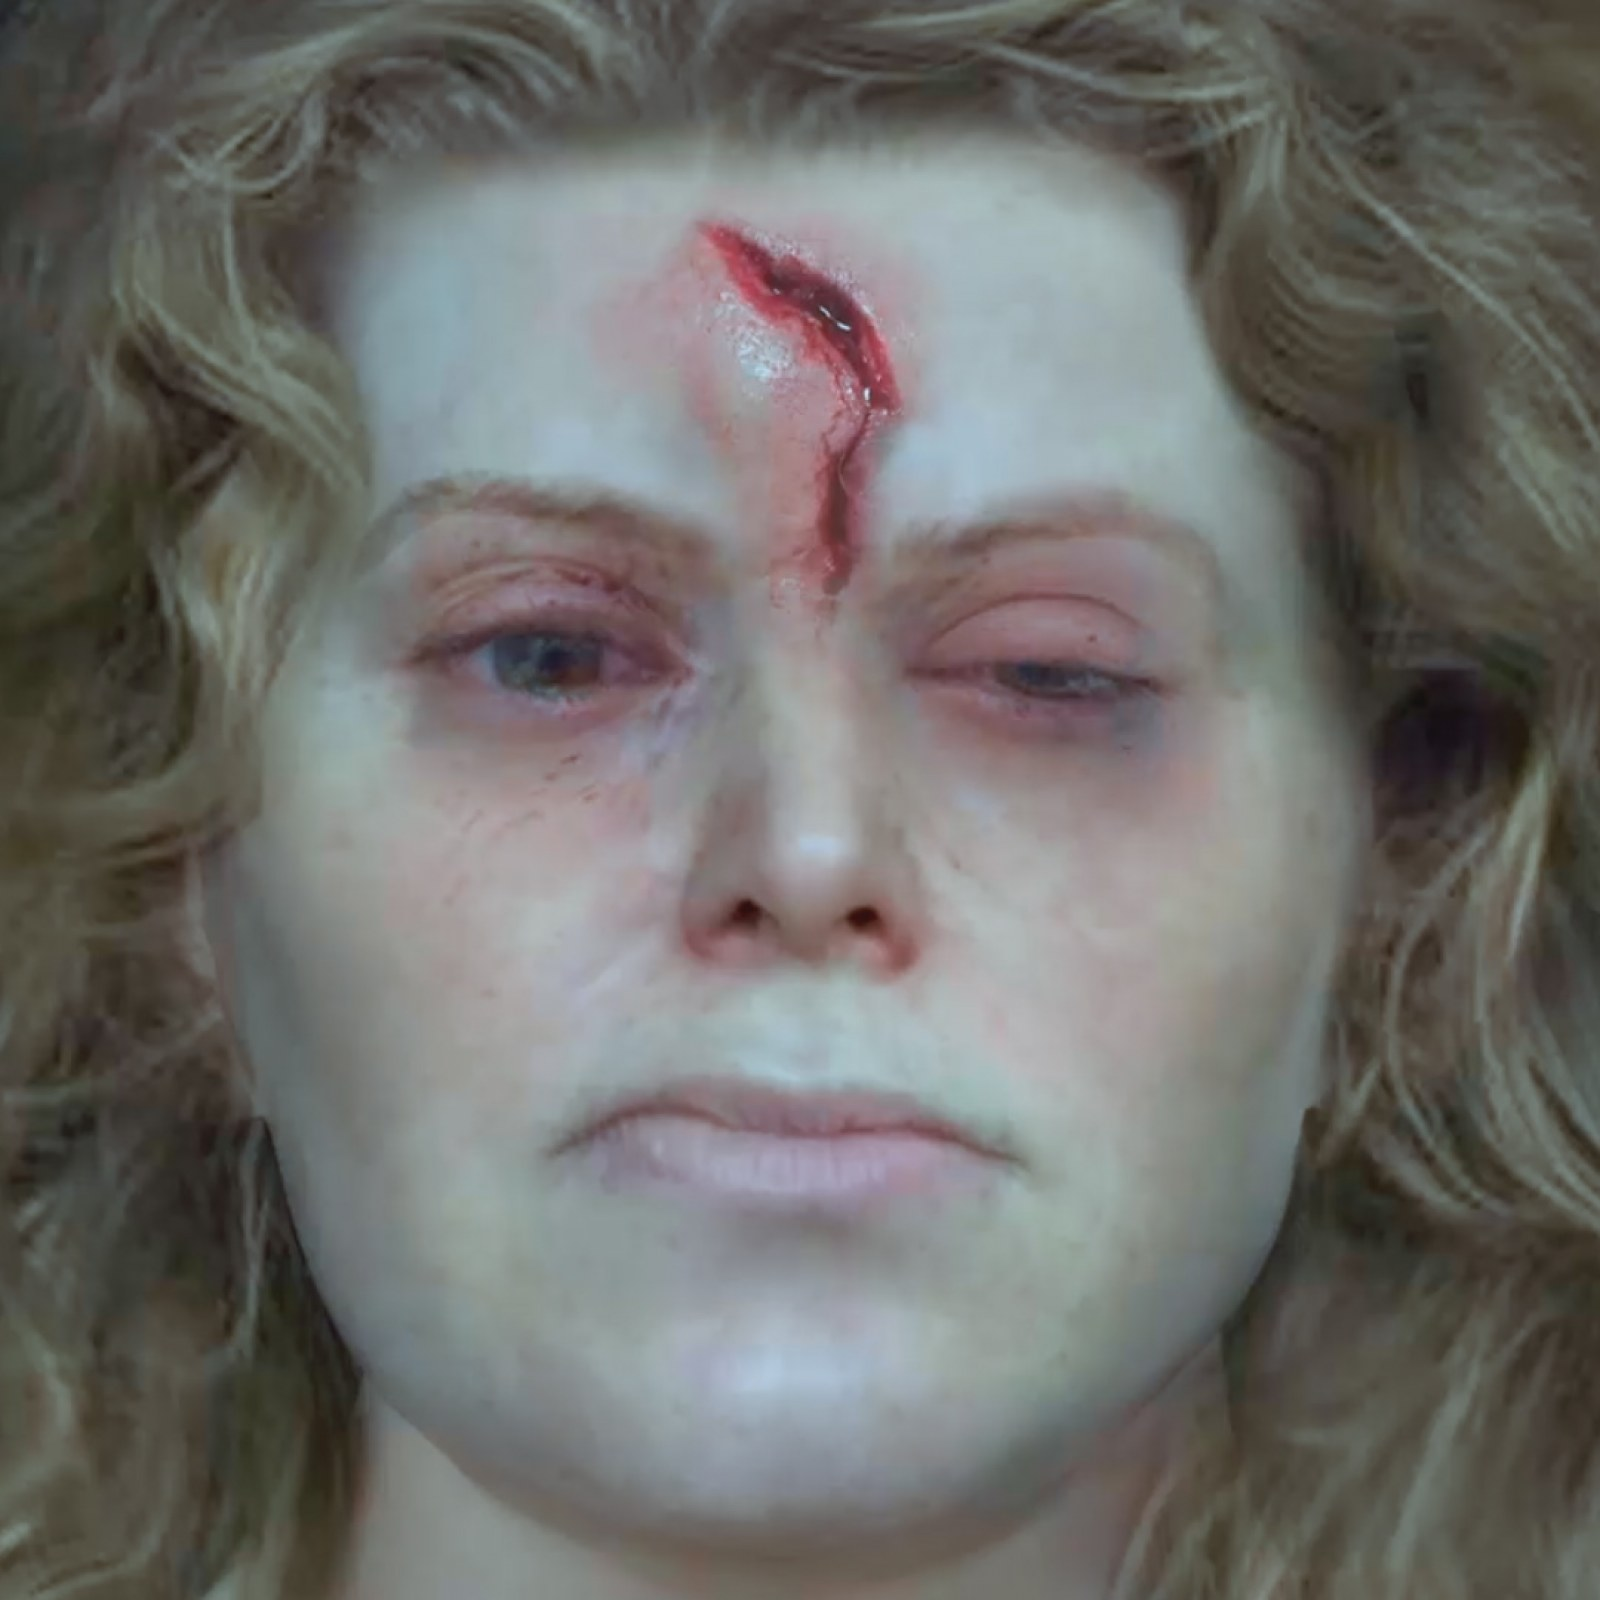 Woman From Ancient Burial May Have Been A Viking Warrior